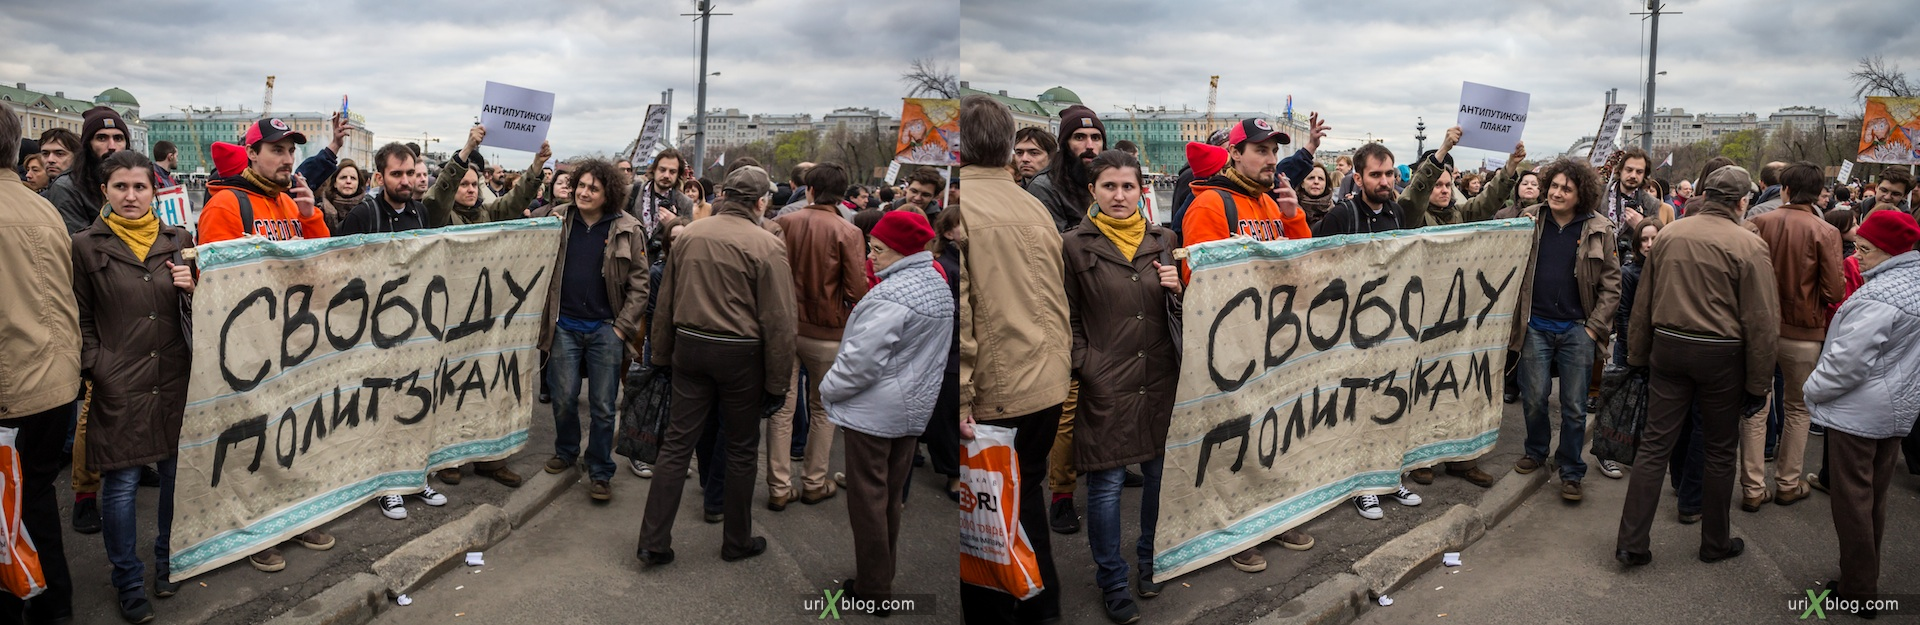 2013, Russia, Moscow, Demonstration, Rally, Meeting, protest, Bolotnaya square, Putin, Navalny, Politics, political prisoners, 3D, stereo pair, cross-eyed, crossview, cross view stereo pair, stereoscopic